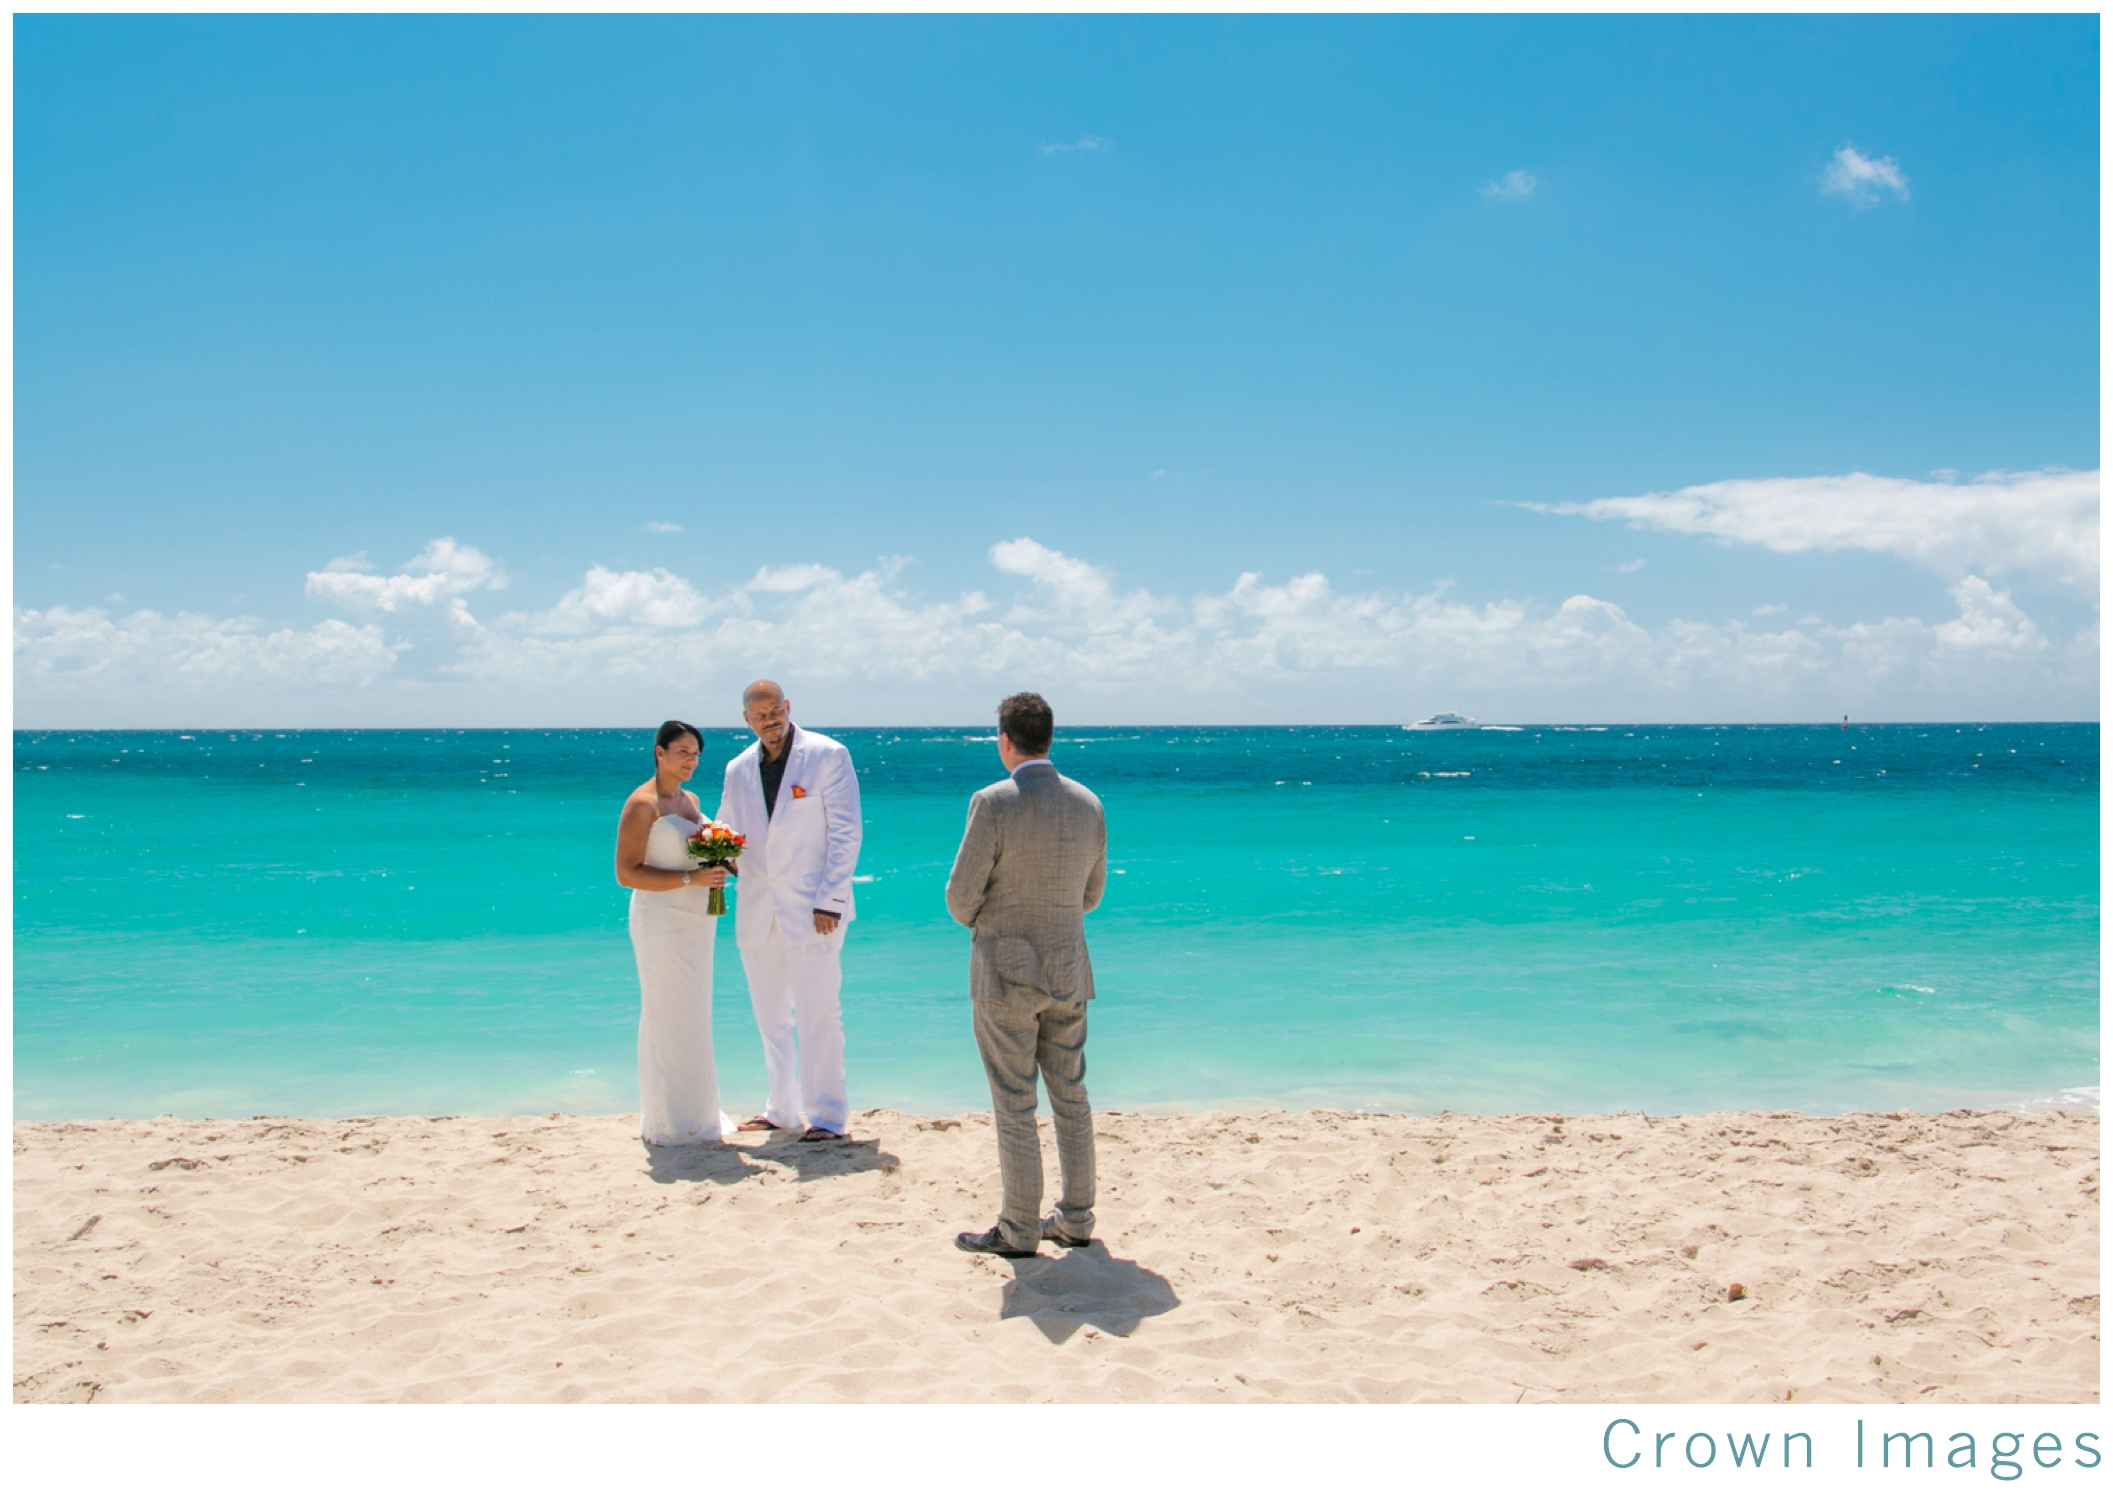 st-thomas-beach-wedding-photos_0891.jpg